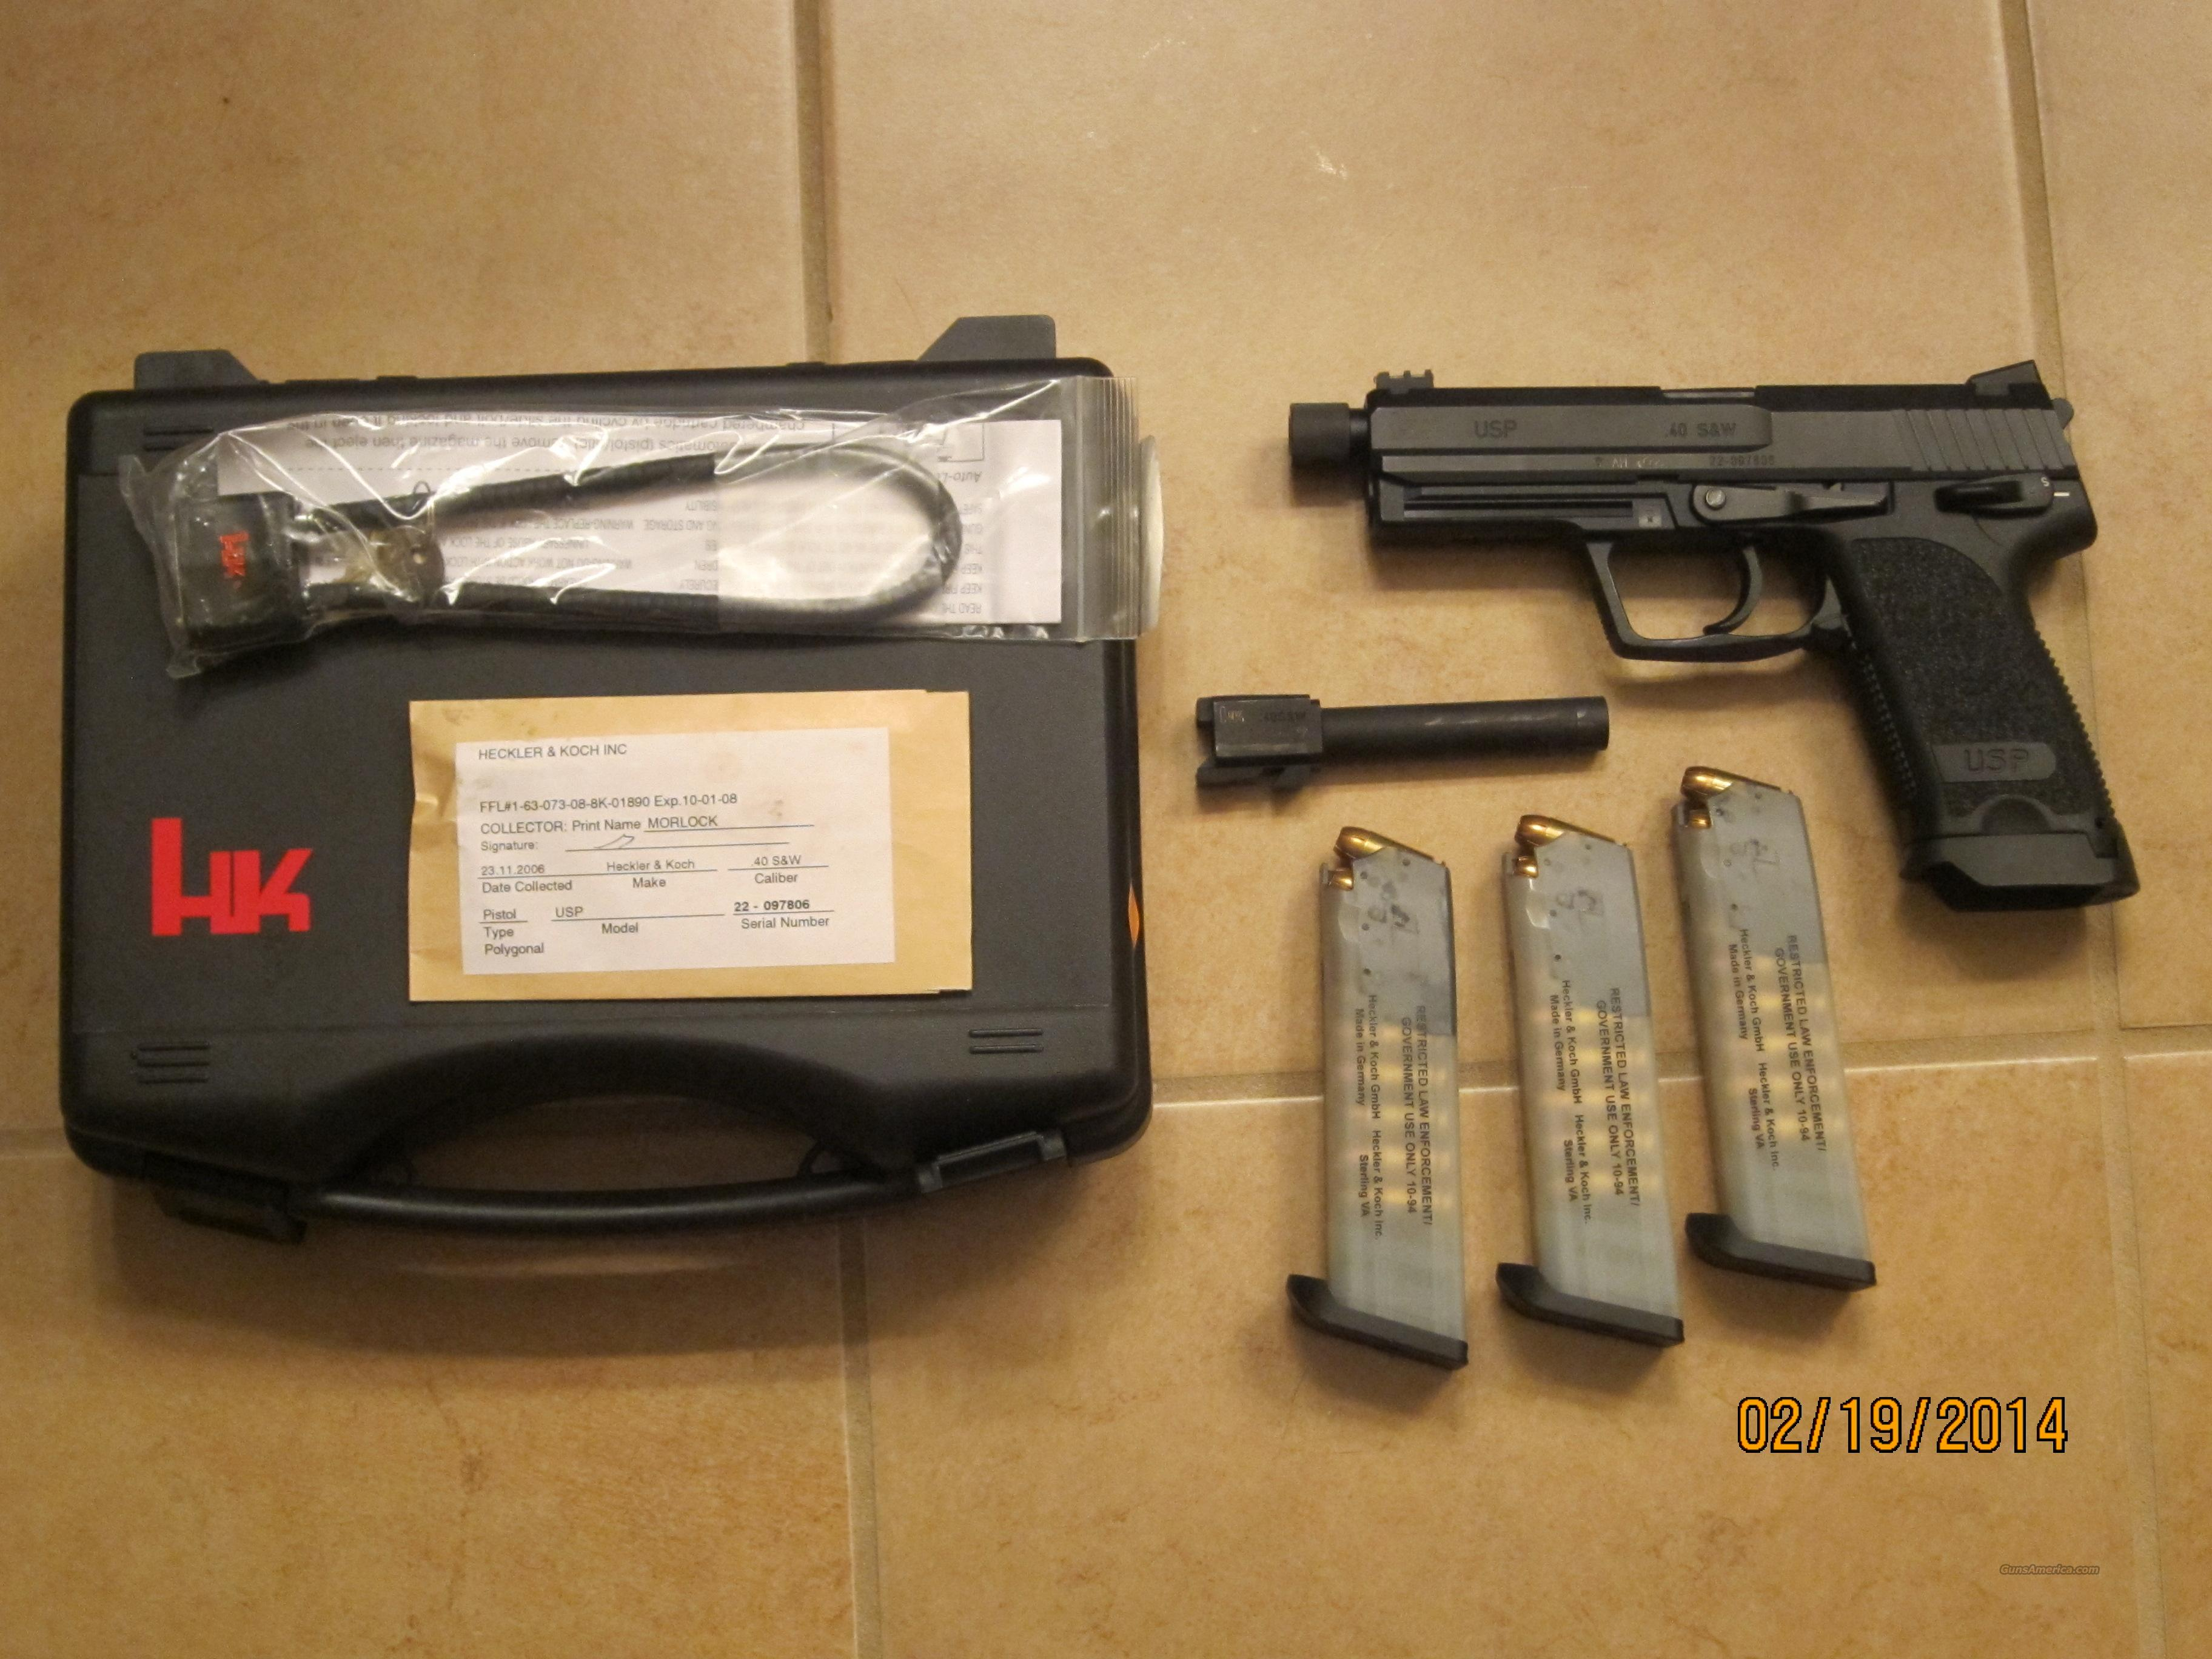 HK Custom Combat 40 USP cal with 3 16 rounds magazine and Mag and gun holster (SEND OFFERS)  Guns > Pistols > Heckler & Koch Pistols > Polymer Frame